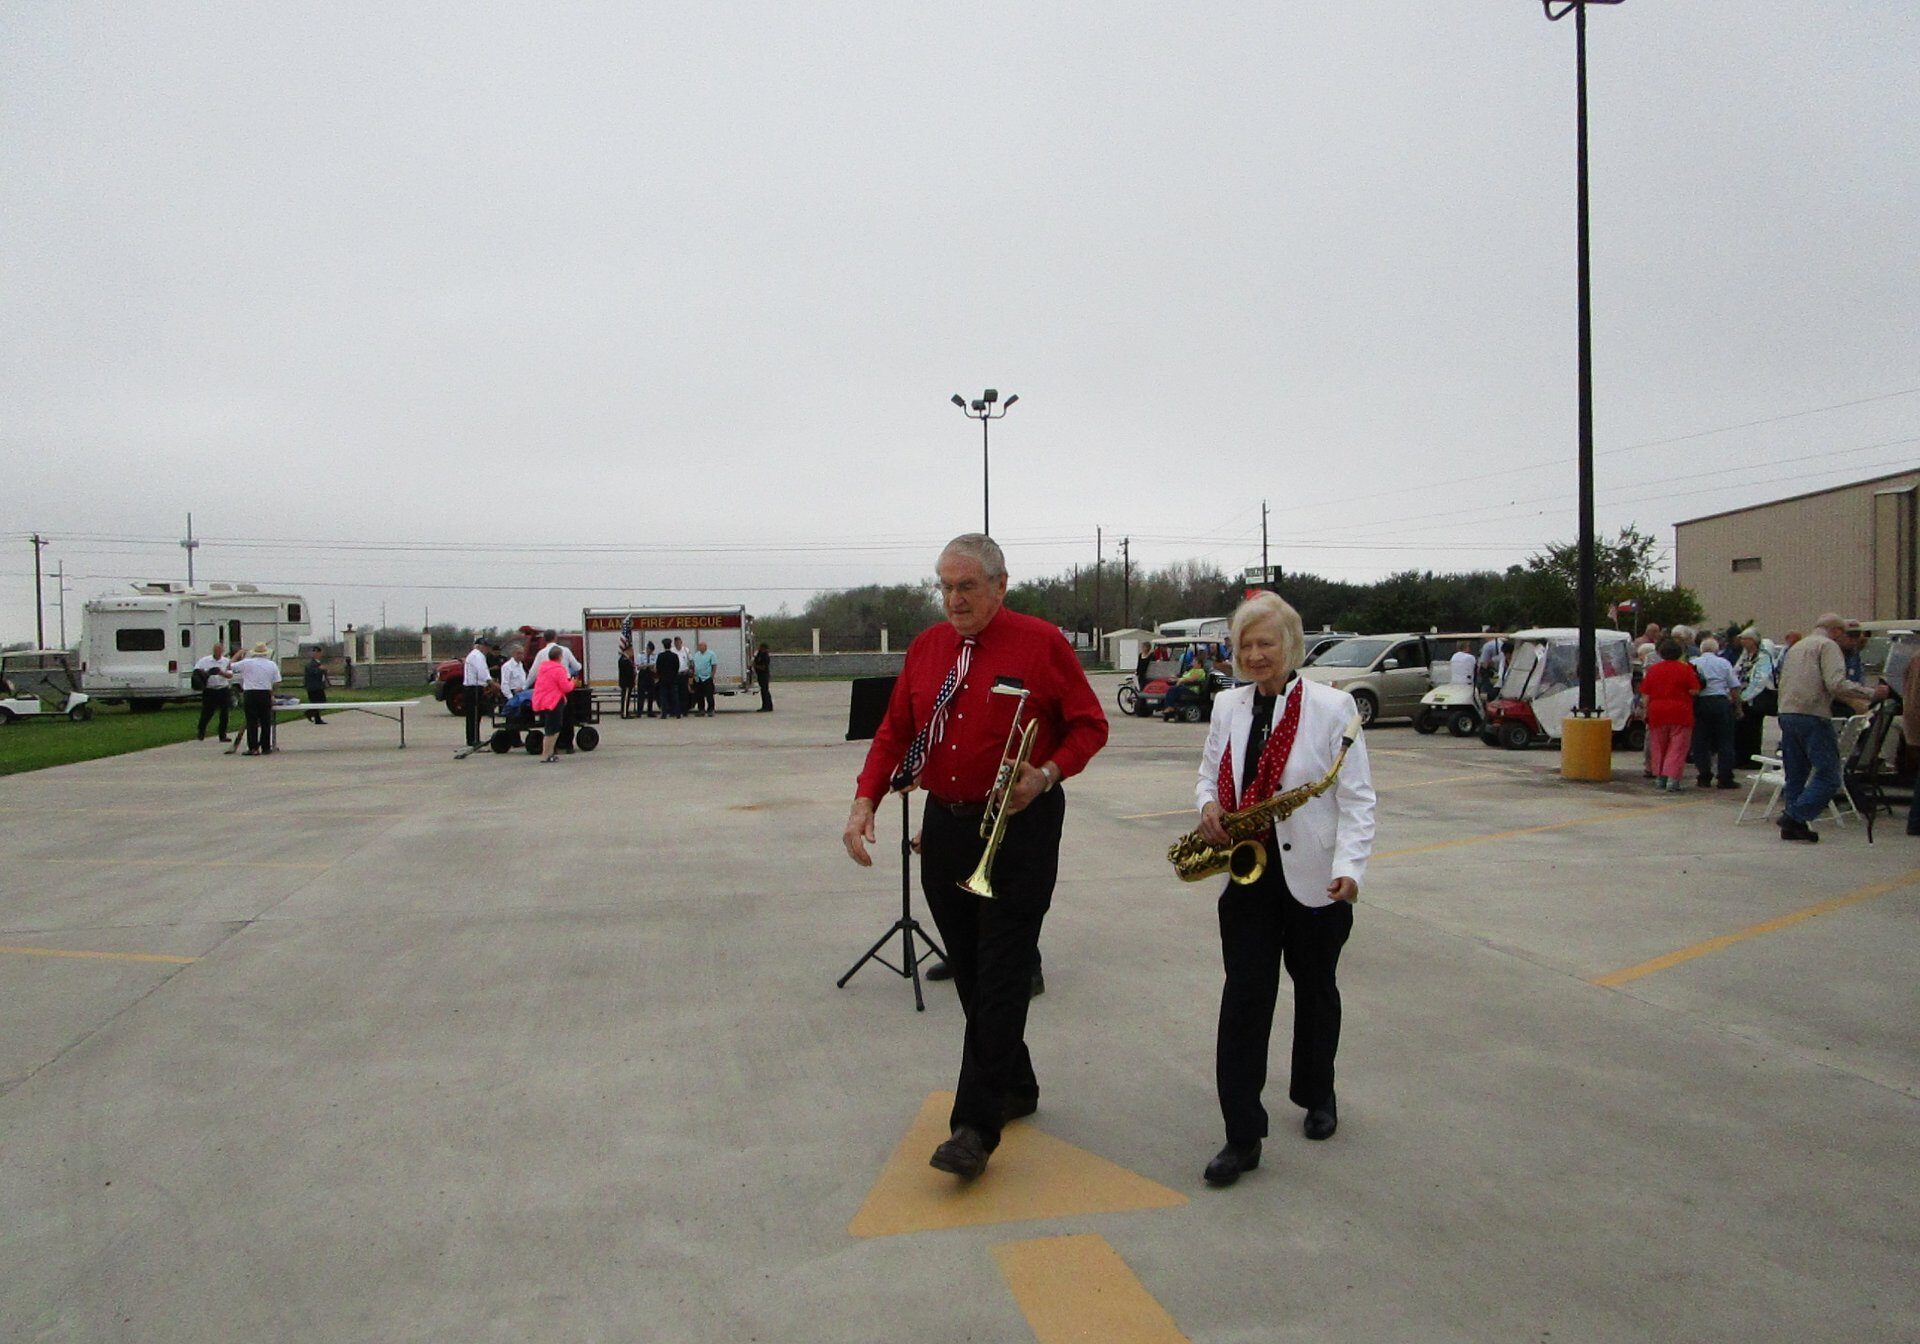 Dr. Chipchase and Mrs. Chipchase carry their instruments after playing for the flag retirement ceremony